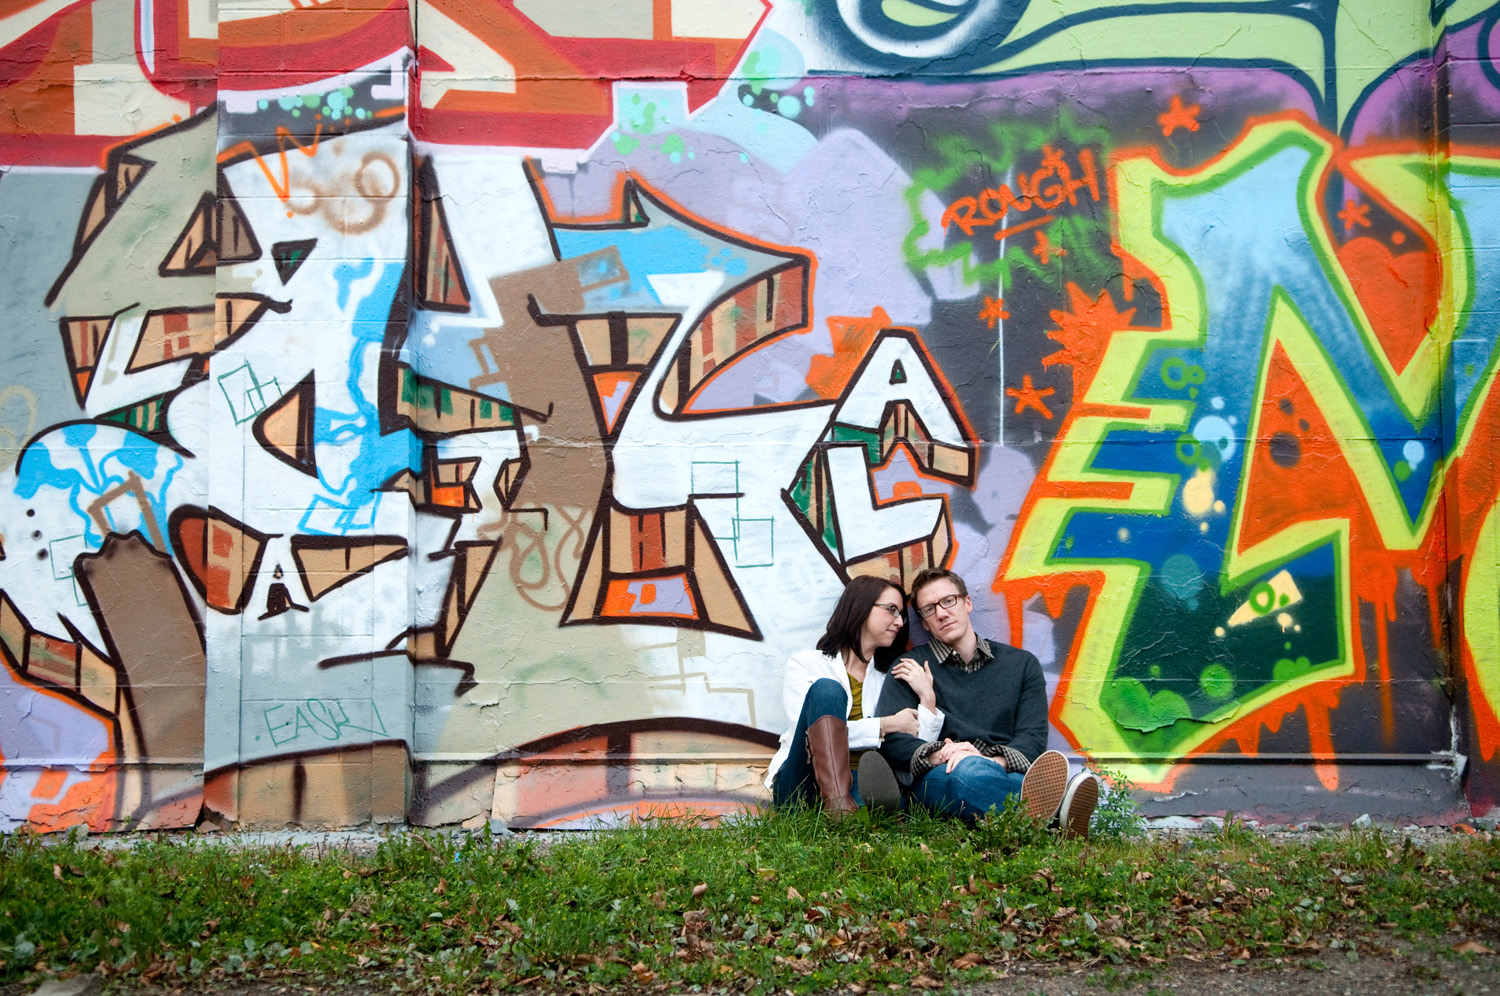 A couple posing for portraits near one of the graffiti-decorated walls at the Intermedia Arts Building in Uptown Minneapolis.